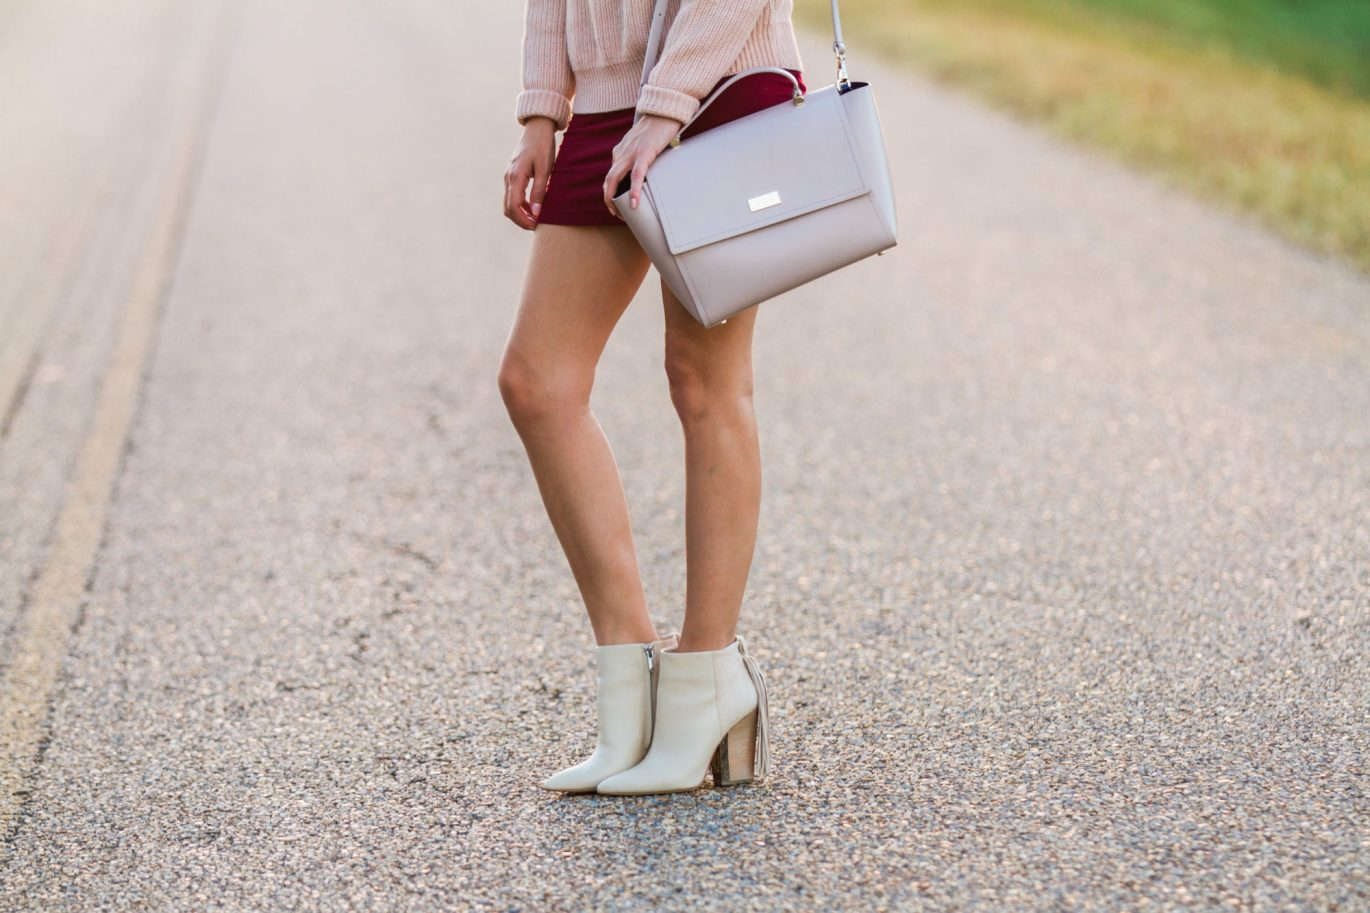 blush and wine color combination, best color combinations for fall, what colors to wear together for fall, pink and red, blush and burgundy, kate spade lilah, how to wear a floppy hat for fall, how to wear a wide brim hat for fall, fall style, fall trends, fall trendy style, fall outfit ideas